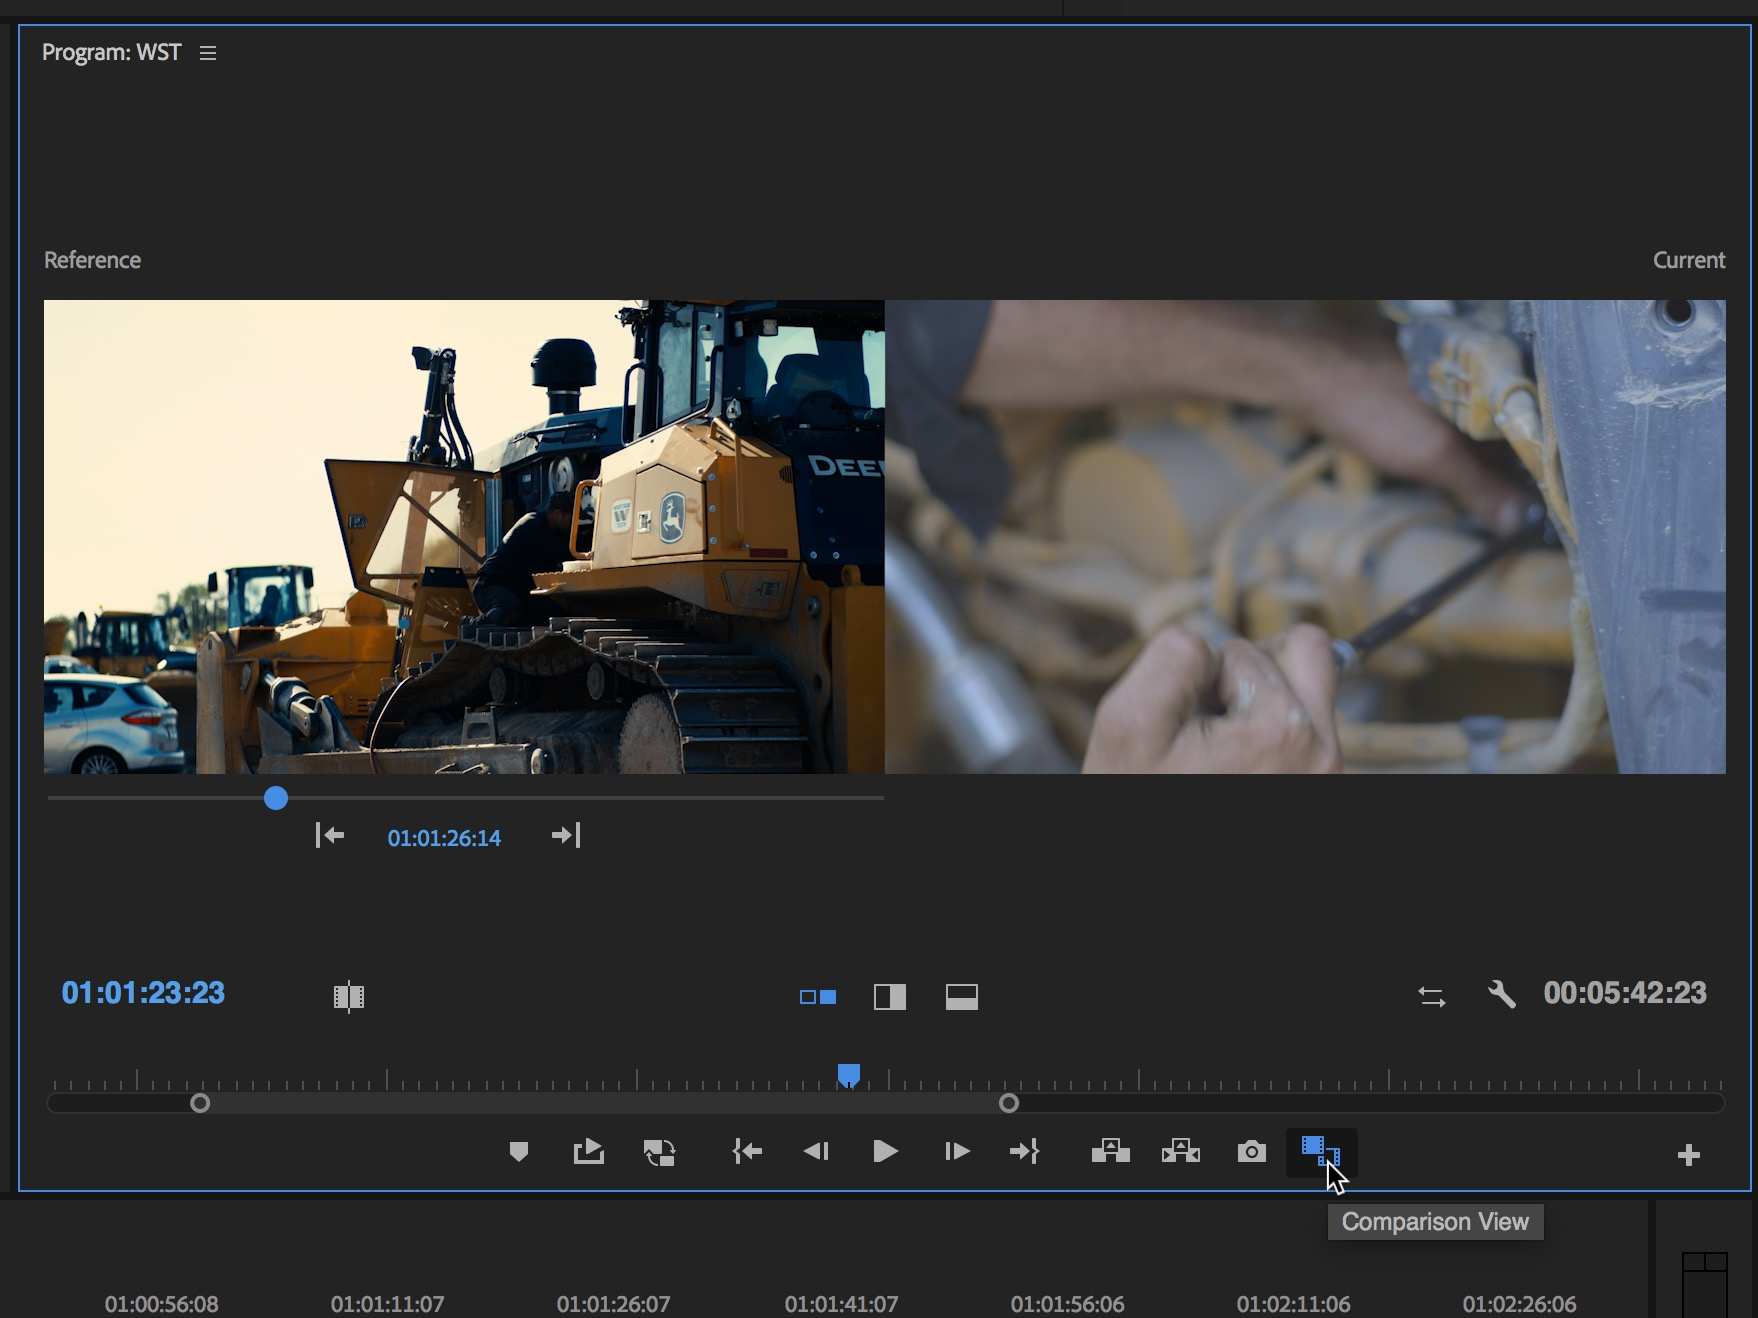 Adobe Premiere Pro 2018 NAB Update: Comparison View, Color Match and